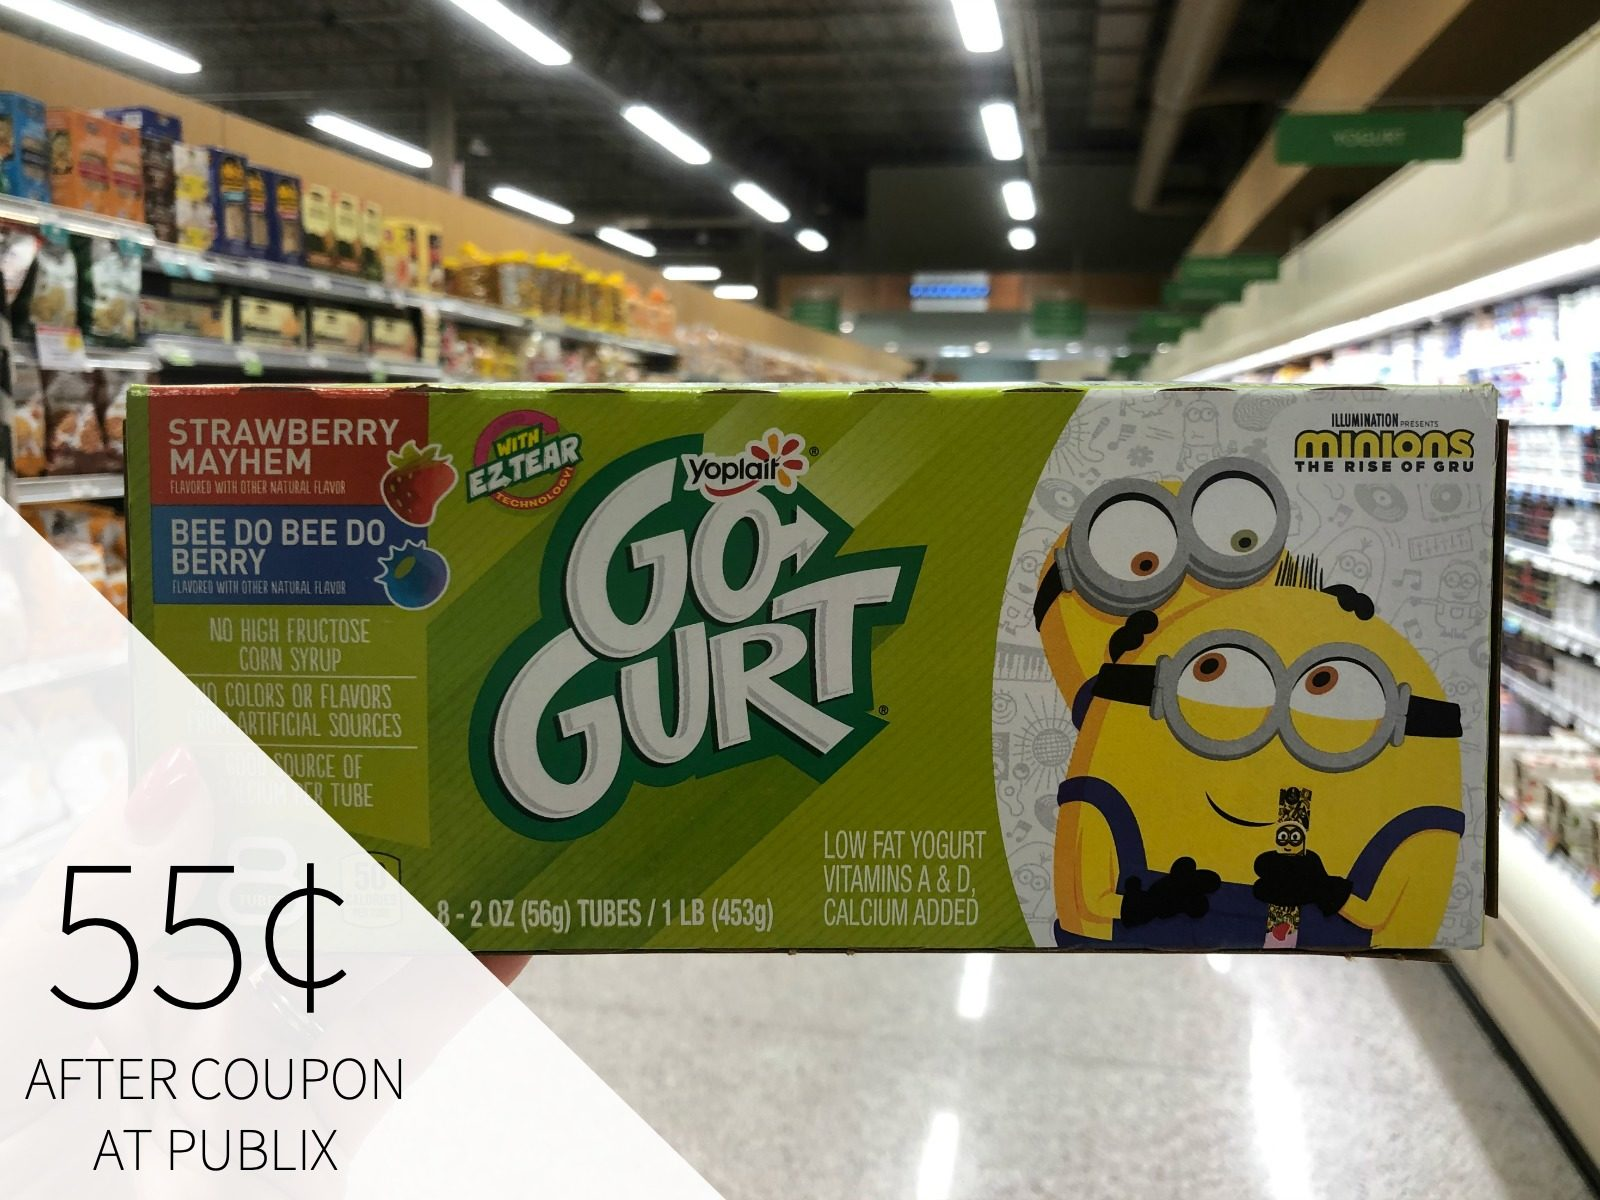 Yoplait Go Gurt Only 55 At Publix